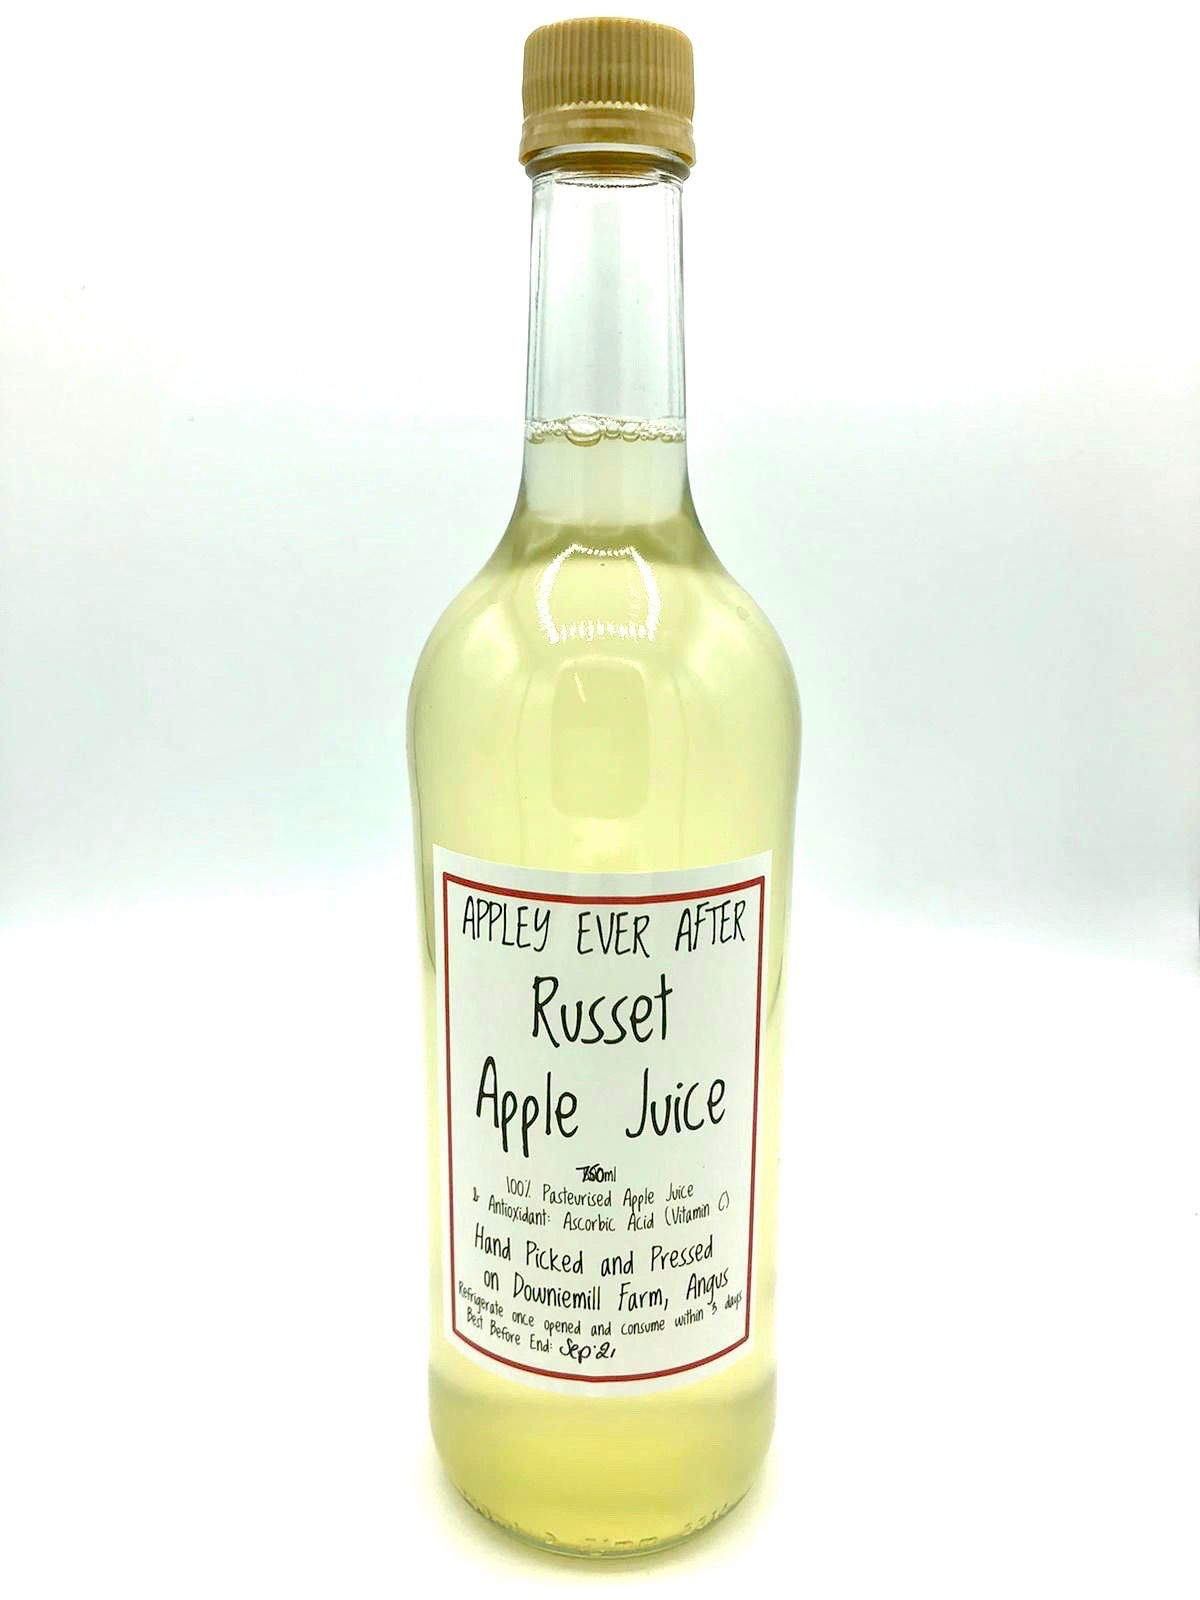 Appley Ever After Russet Apple Juice